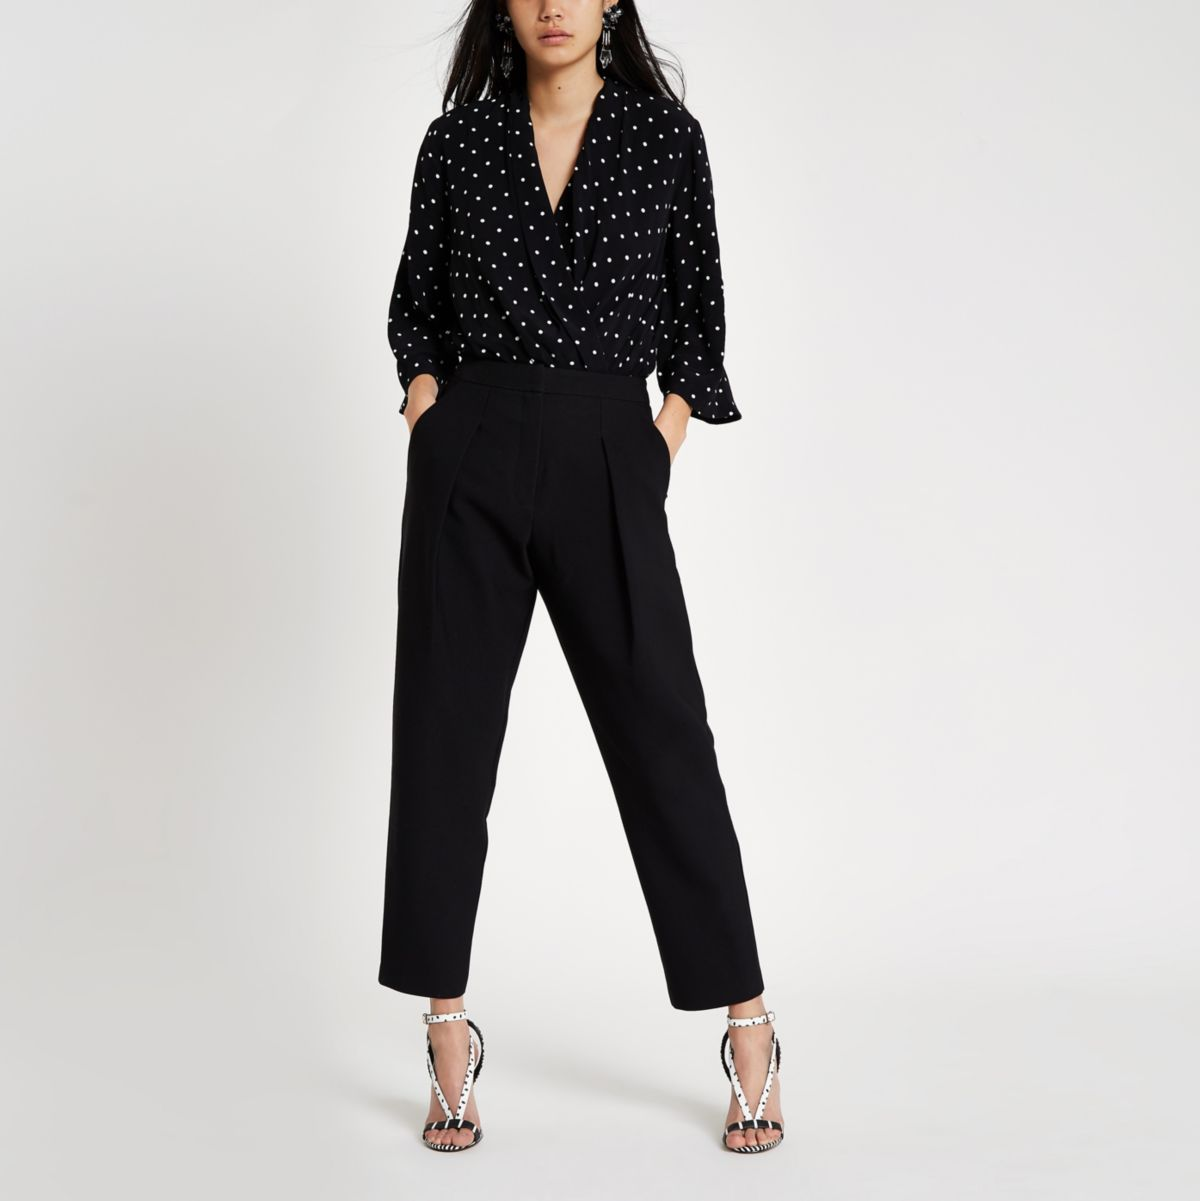 Black fitted peg trousers